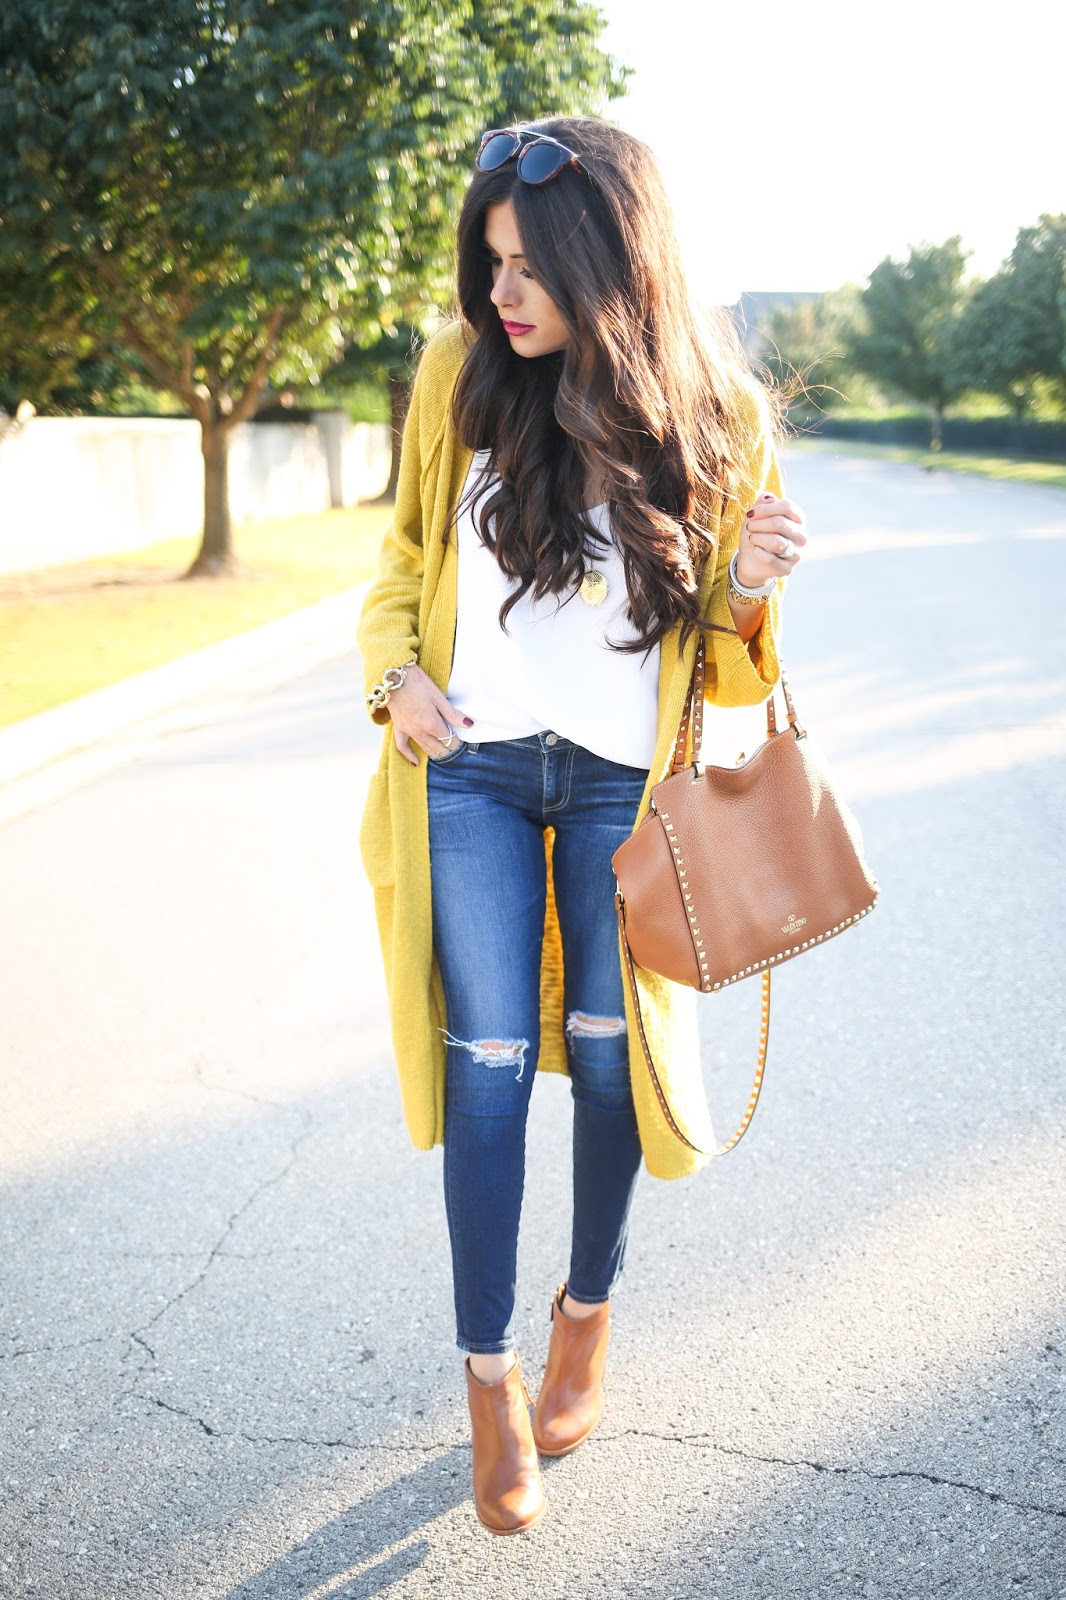 Autumn Brights The Sweetest Thing Bloglovin